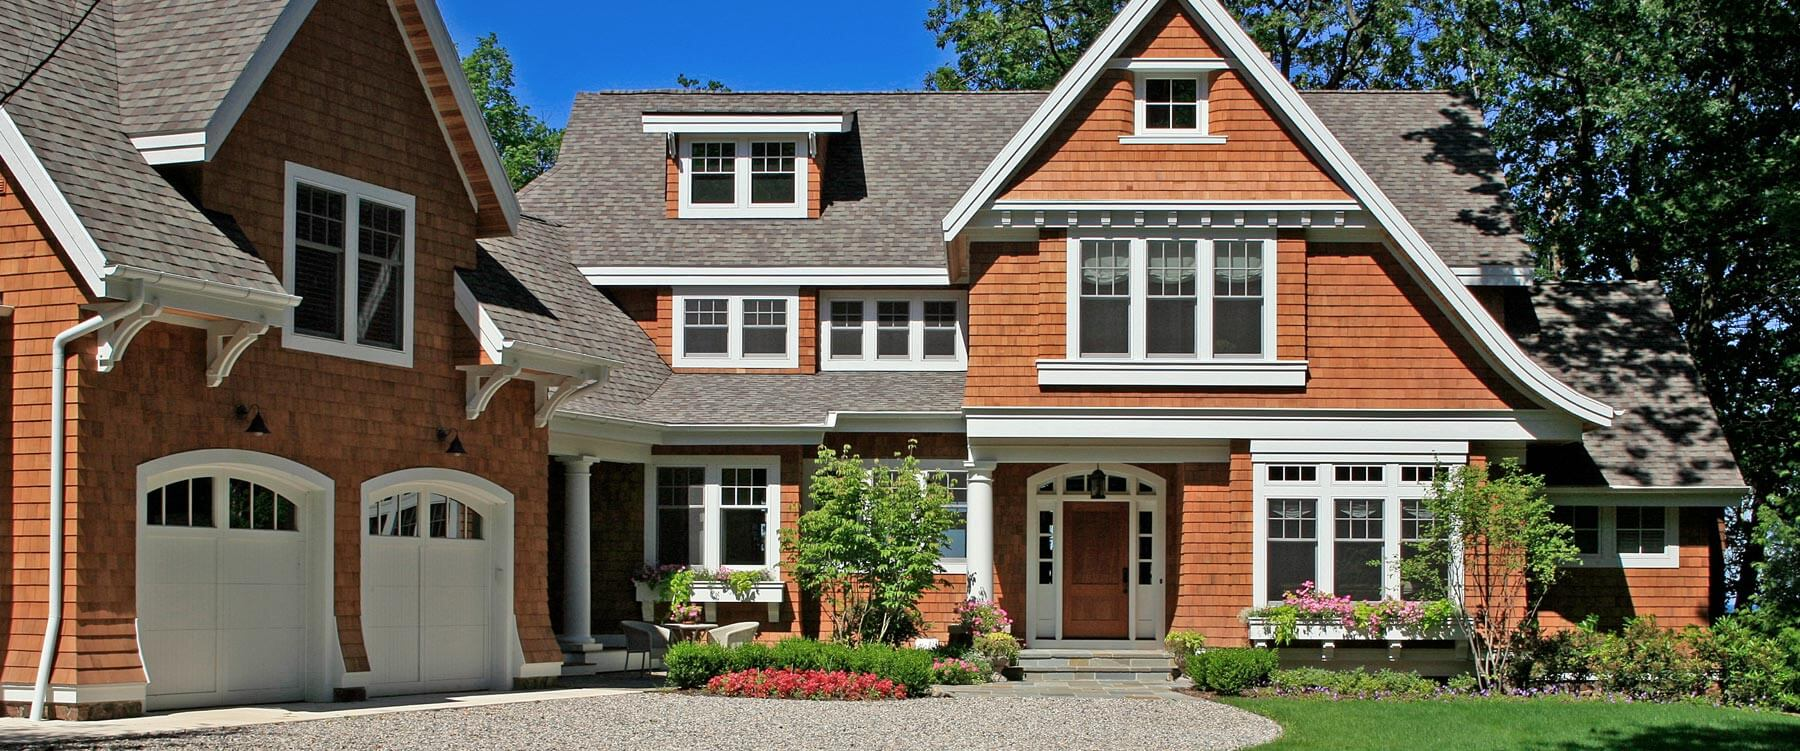 Shingle style cottage amdg architects for Shingle style cottage